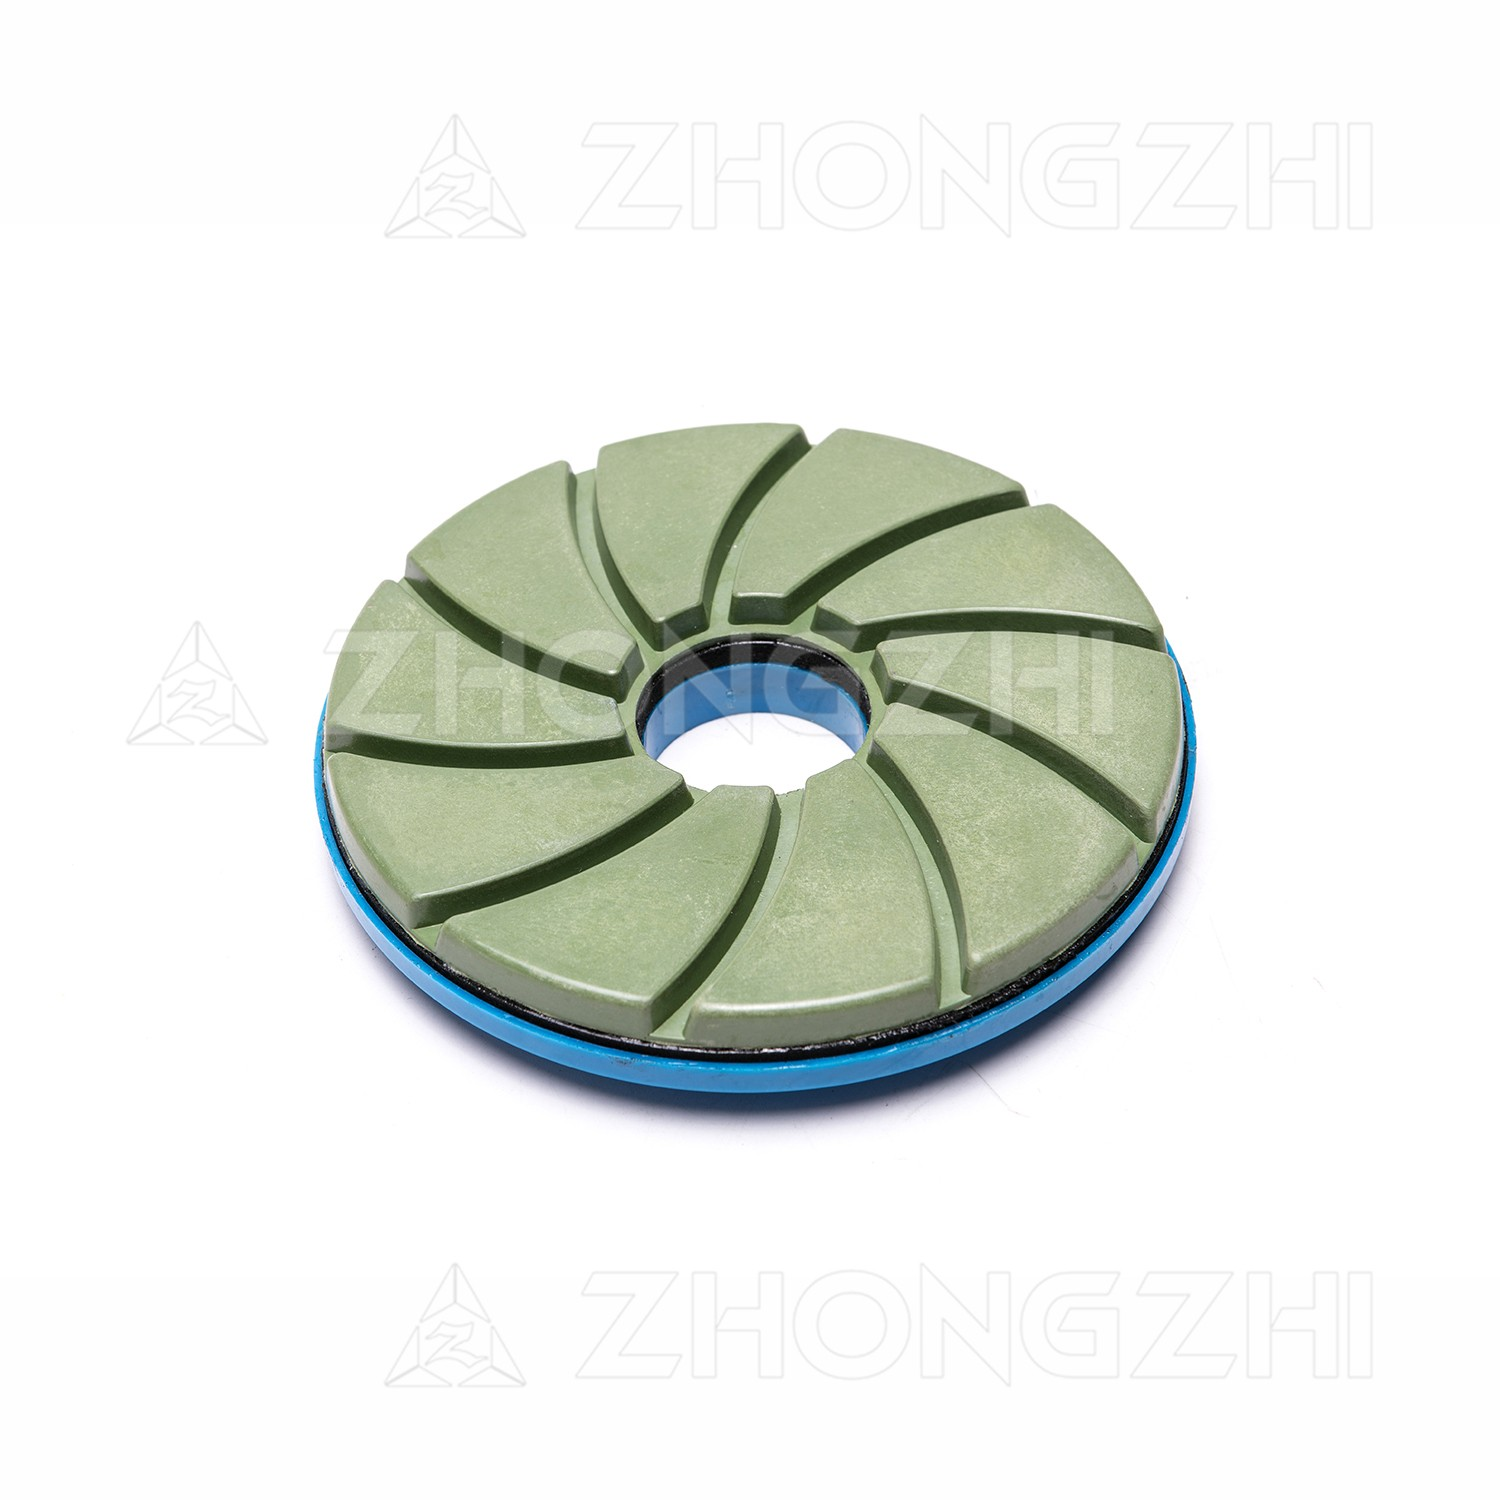 Professional 150mm Chamfering Wheel For Artificial Stone Manufacturers, Professional 150mm Chamfering Wheel For Artificial Stone Factory, Supply Professional 150mm Chamfering Wheel For Artificial Stone